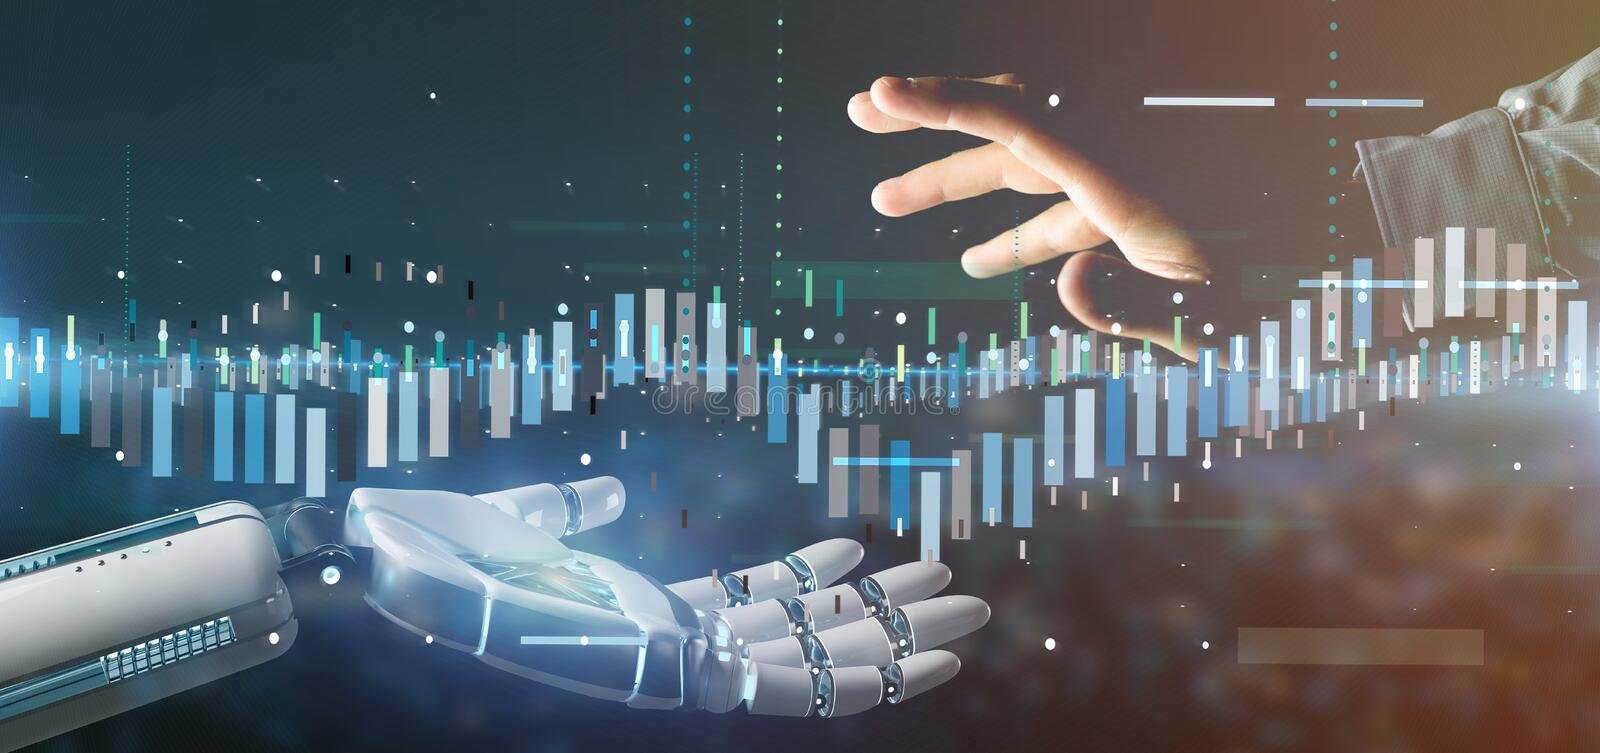 Cyborg hand holding a Business stock exchange trading data information 3d rendering royalty free stock photo